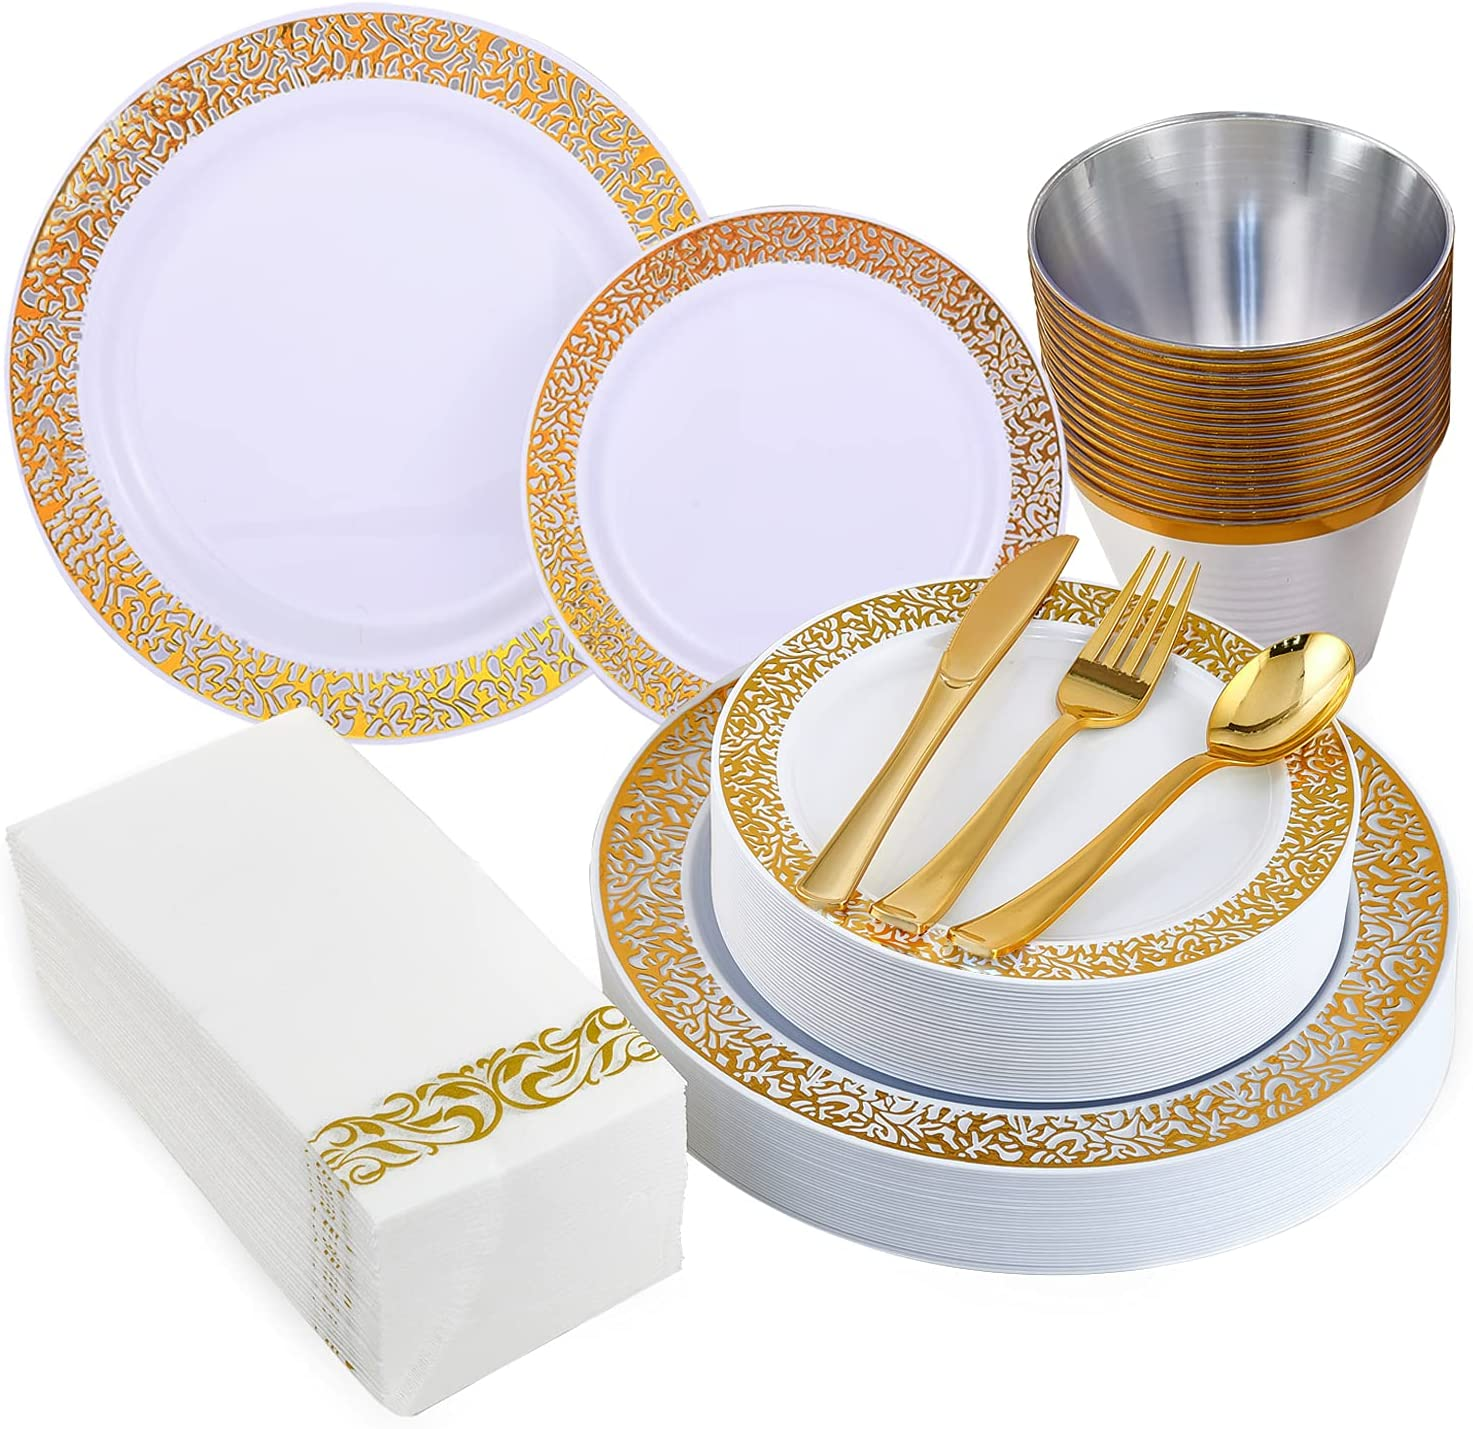 210 Pieces Sale Special Price San Jose Mall Gold Plastic Plates Incl Dinnerware Disposable